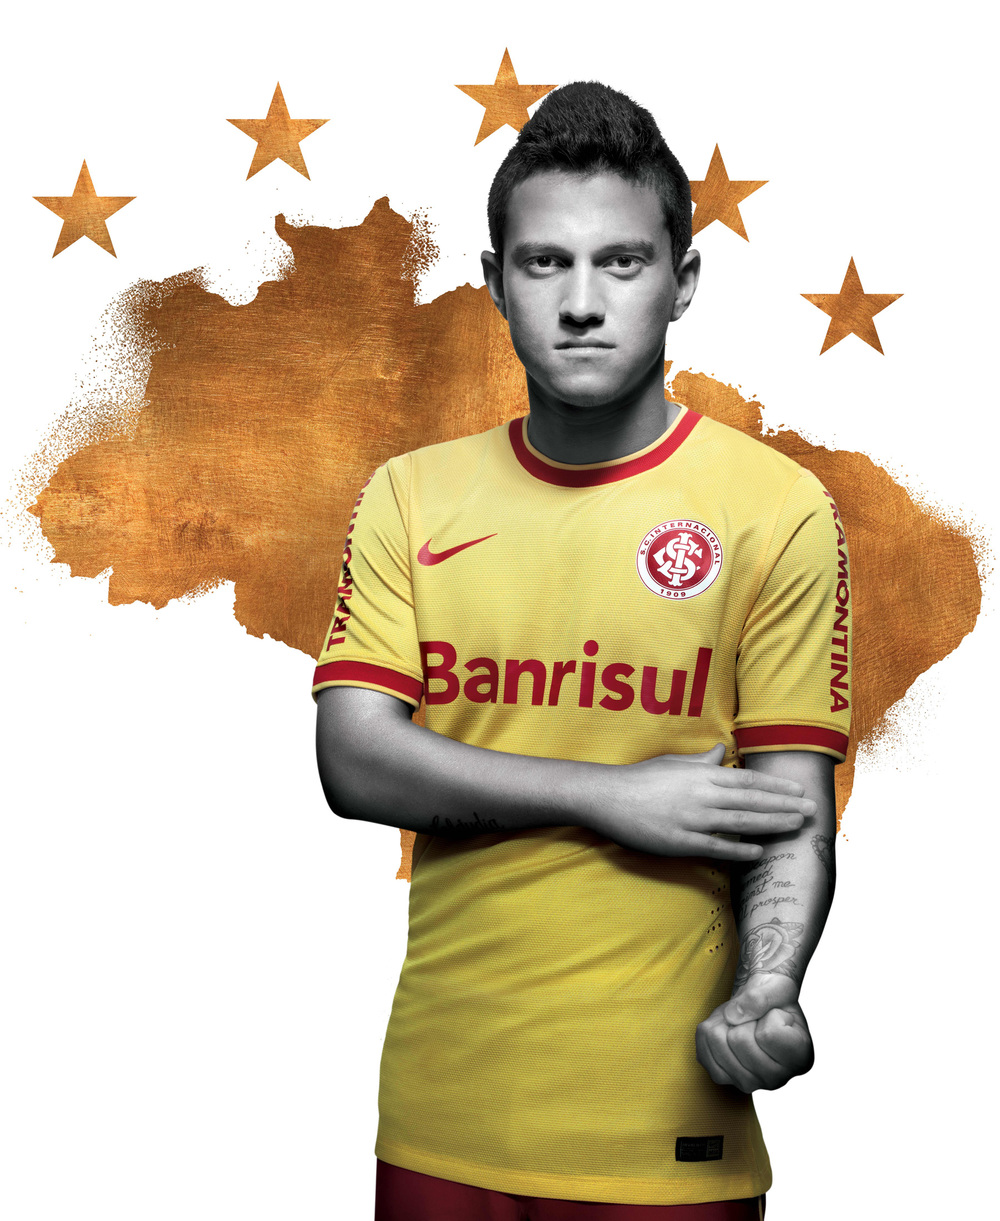 Internacional_Third_Yellow_Jersey_27302.jpg